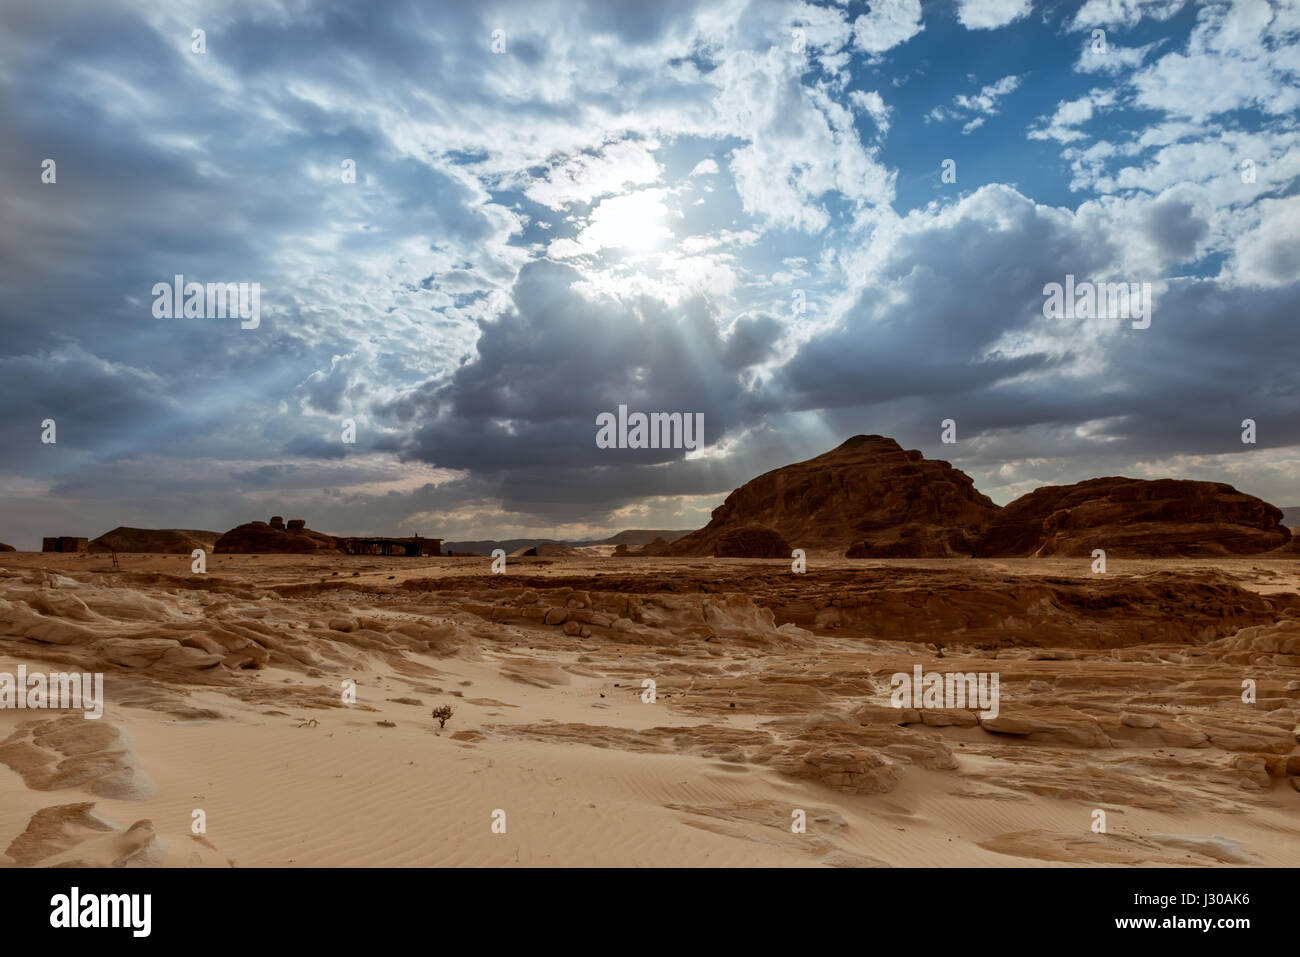 Mountain in Sinai desert Egypt - Stock Image